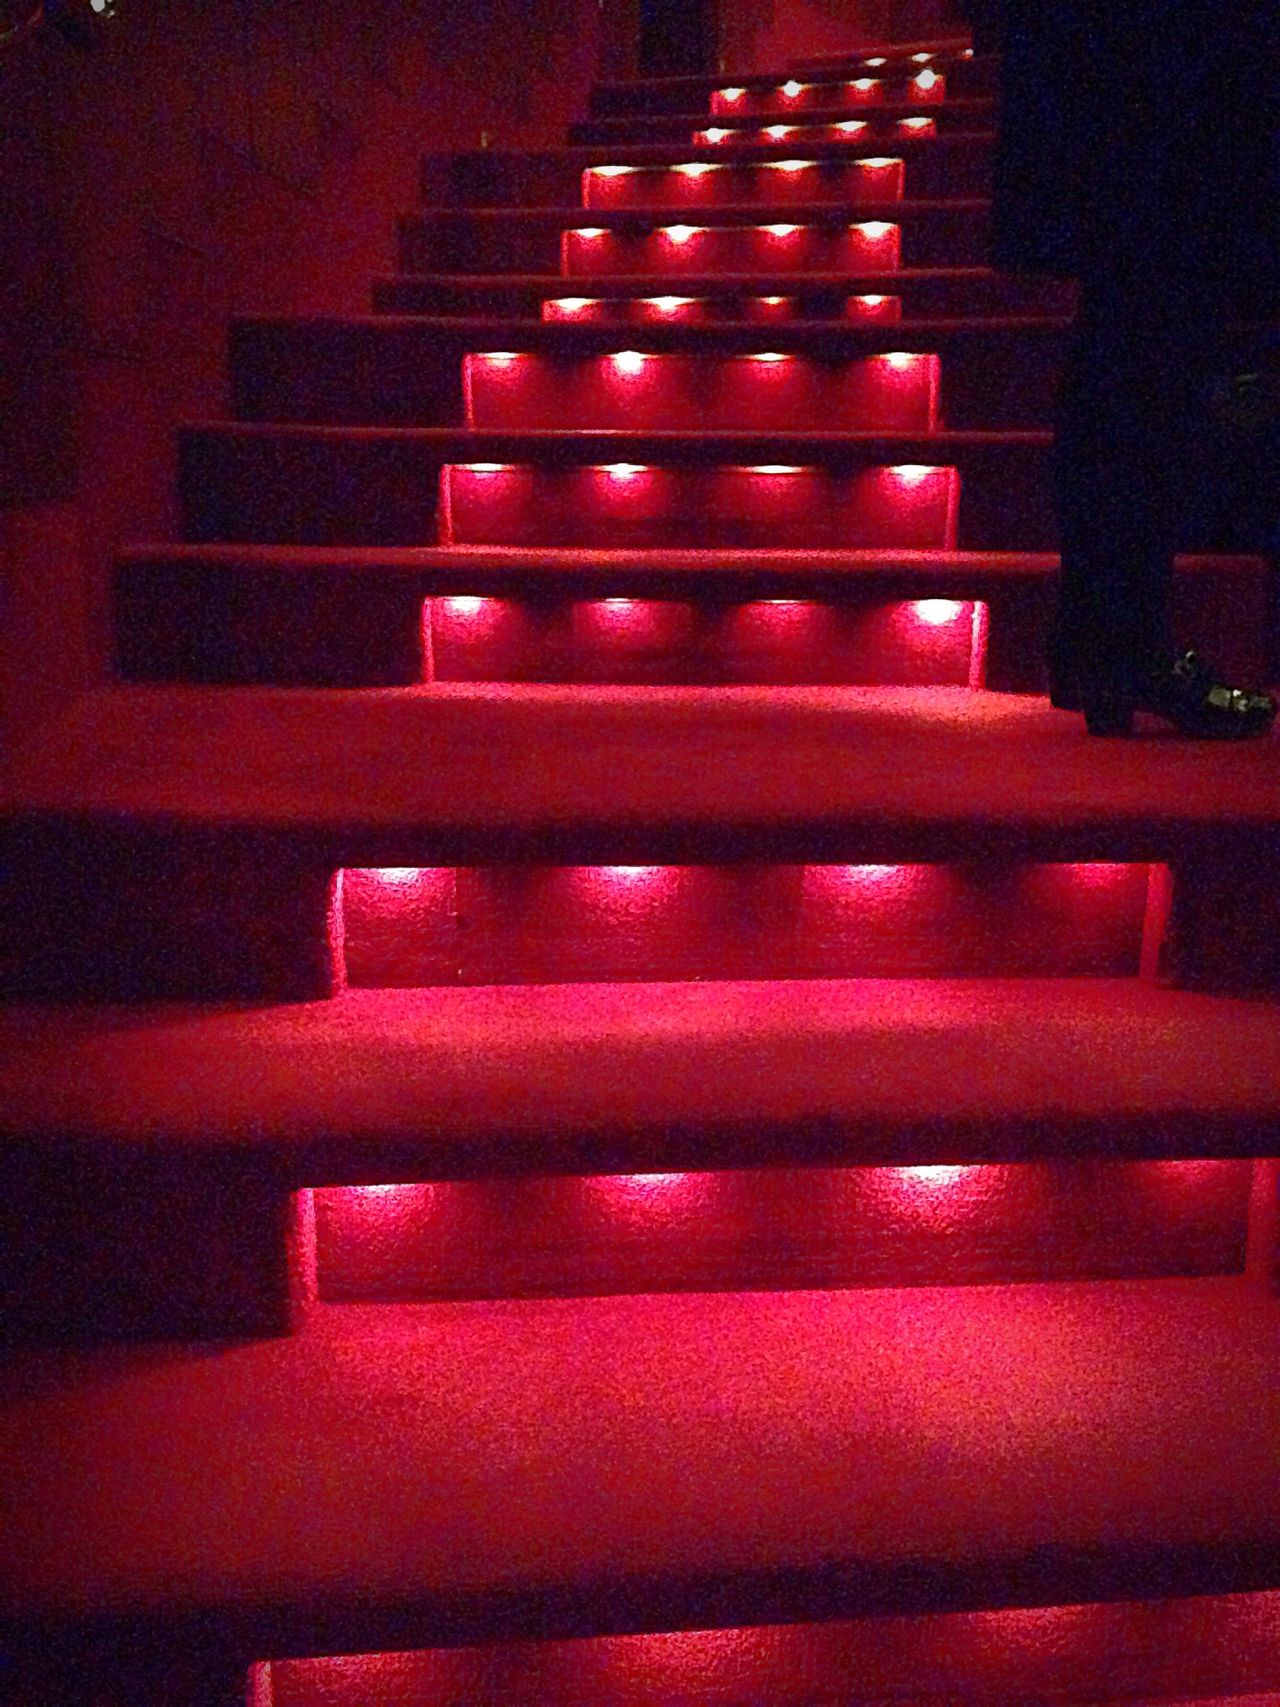 Romance Stairs Carpet Mood Lighting  Going Up No People Theatre Playhouse Ballet Melbourne Art Centre Interior Design Hidden Lights Red Light Red Carpet